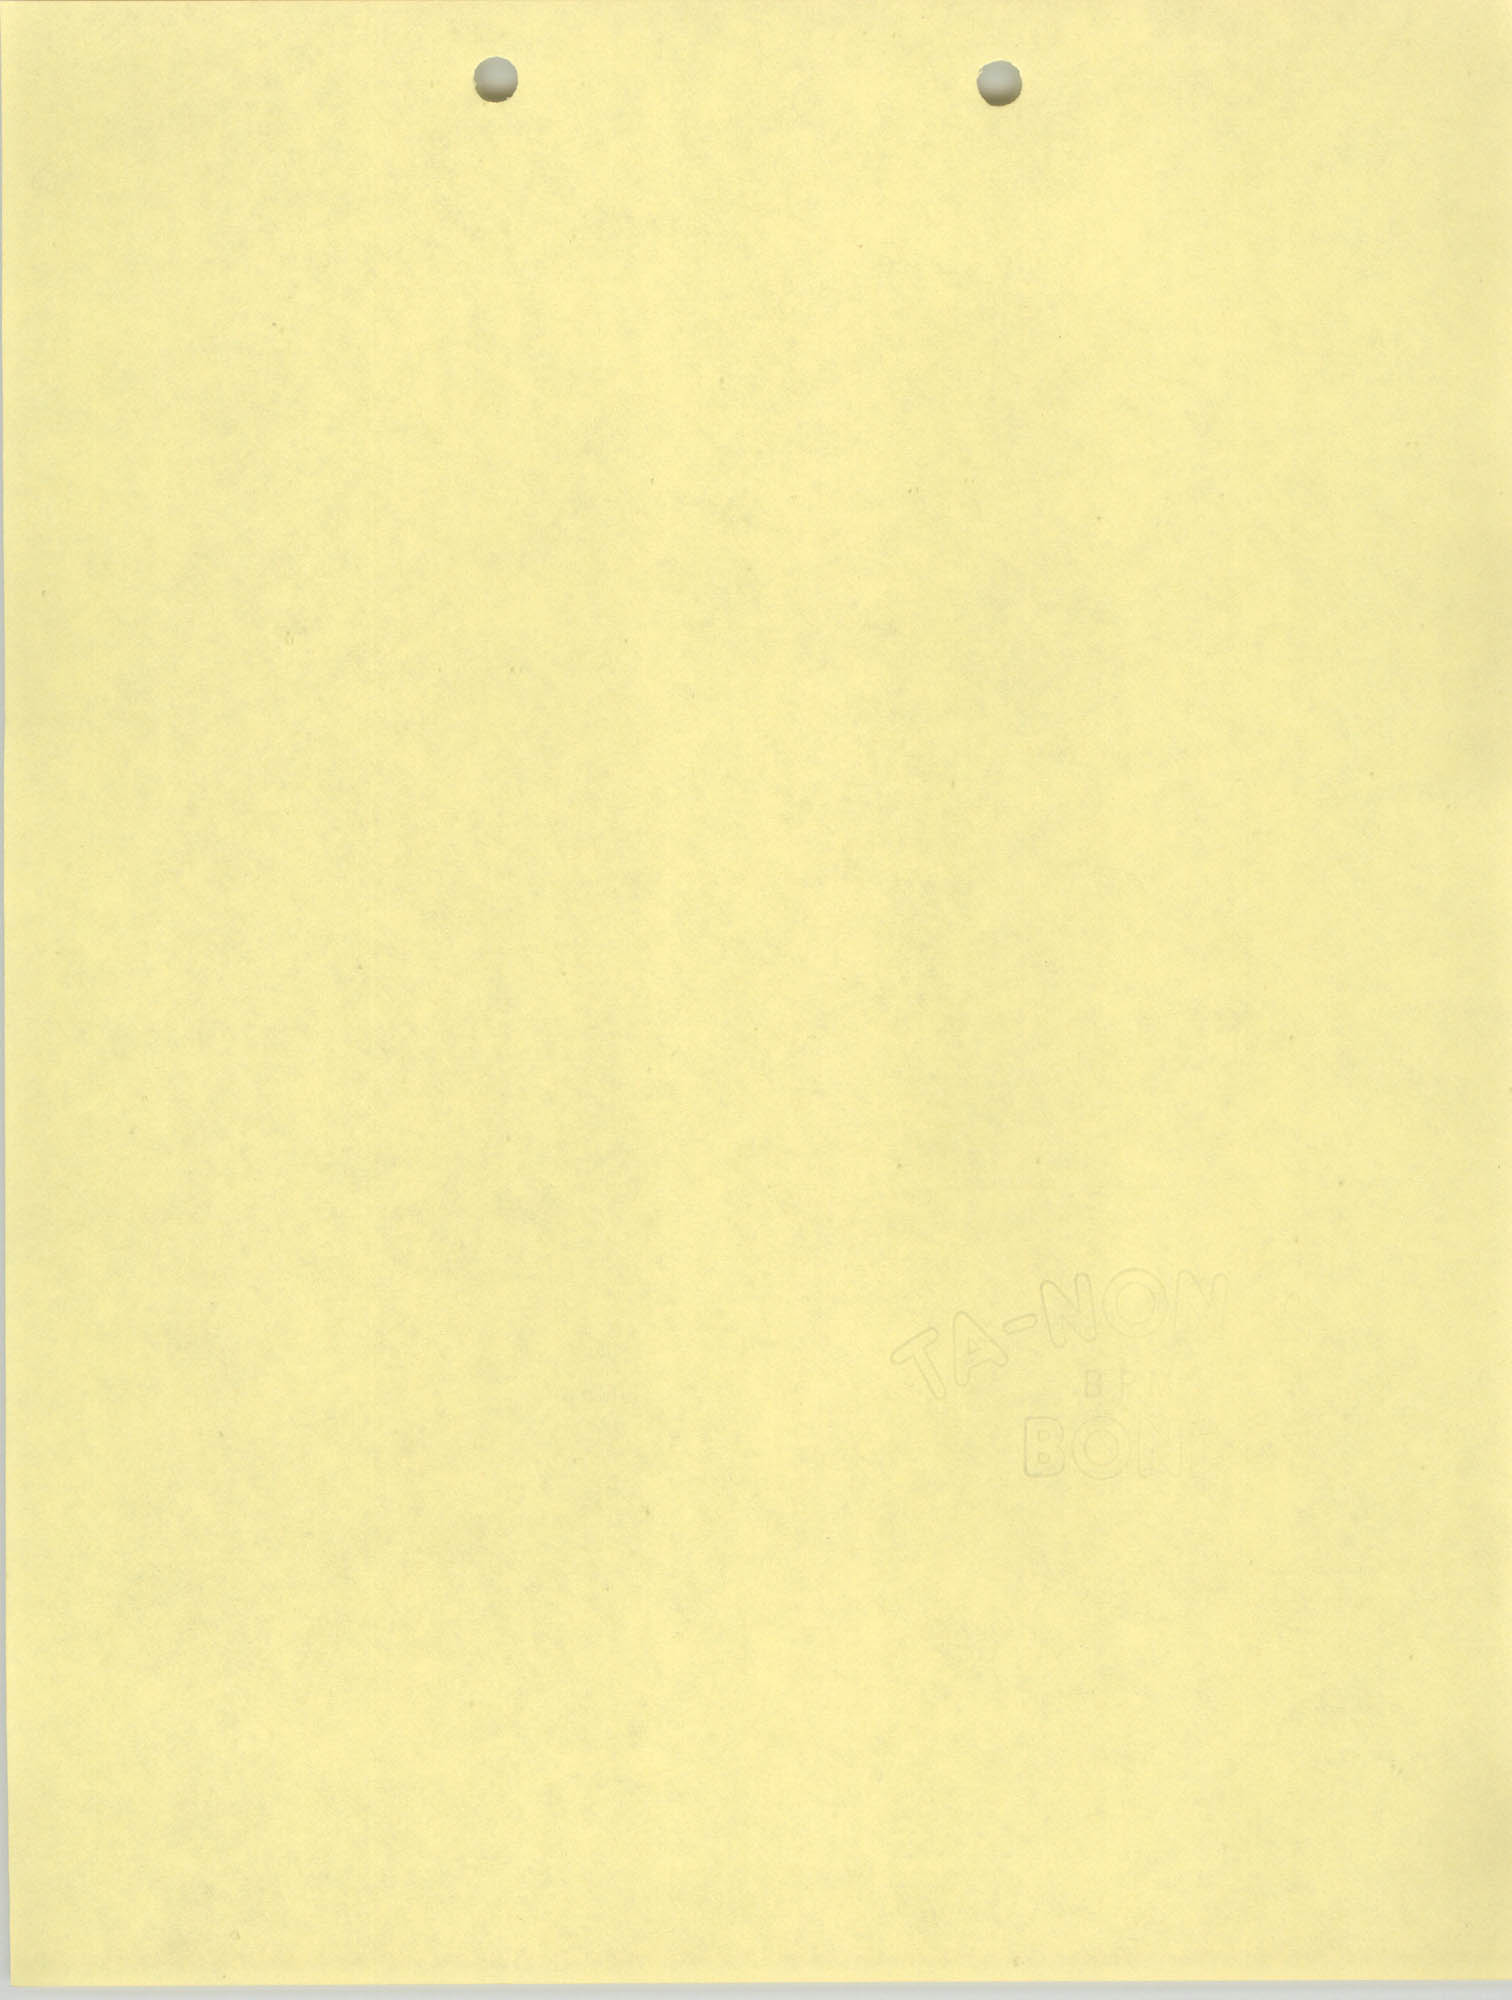 Blank Yellow Page